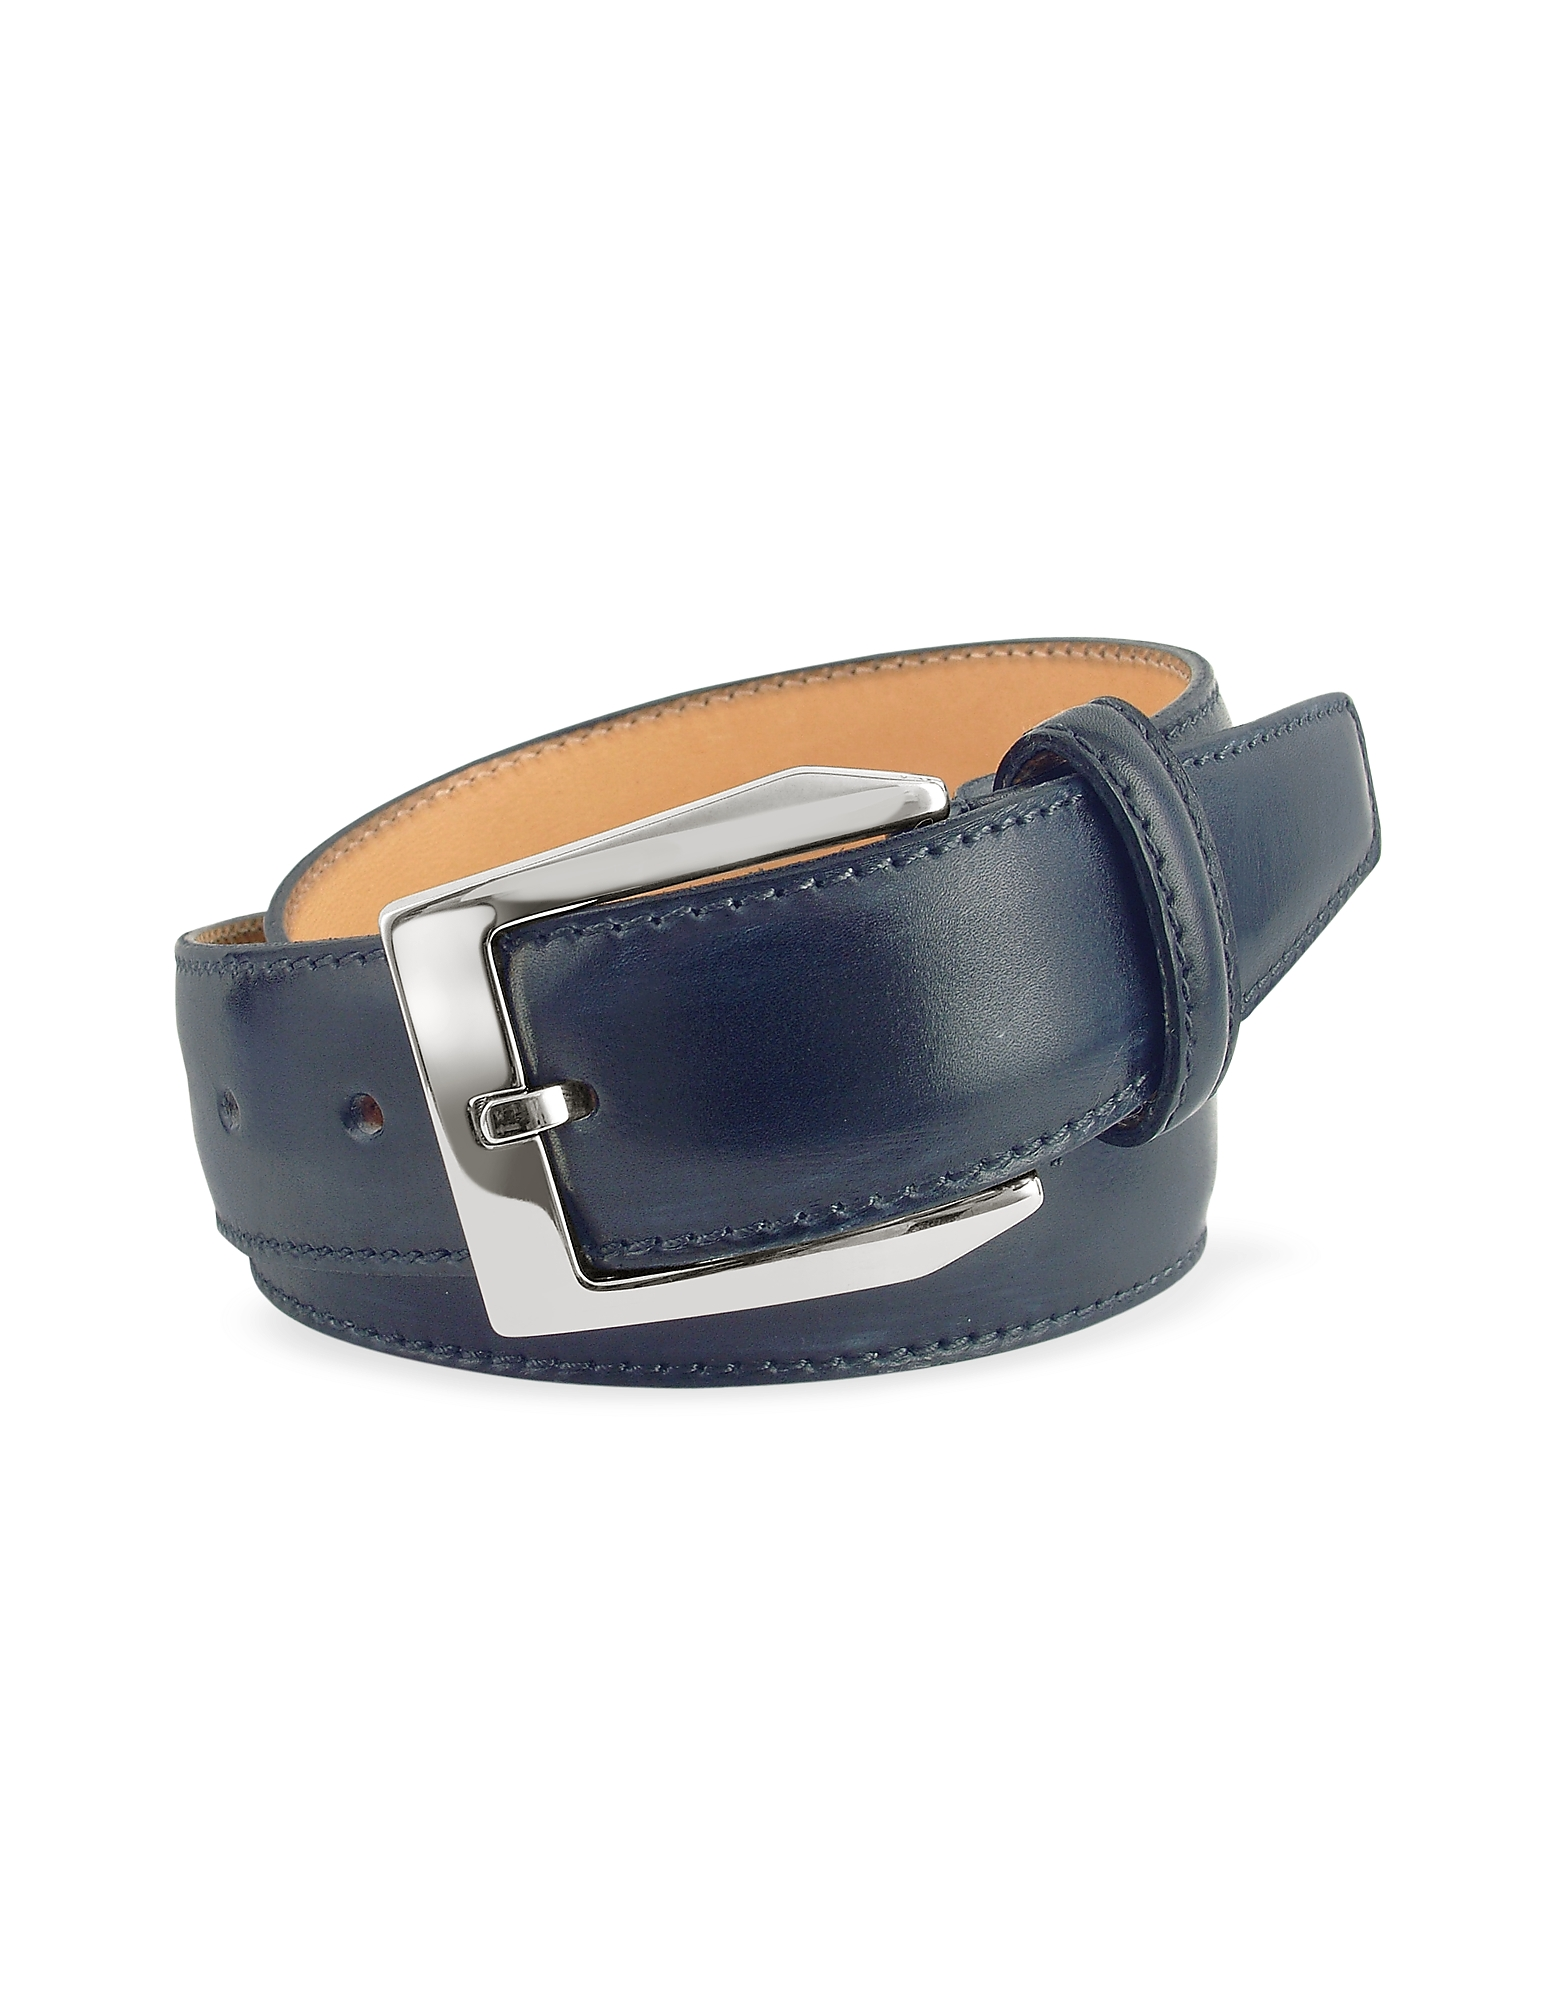 Pakerson Men's Belts, Men's Blue Hand Painted Italian Leather Belt